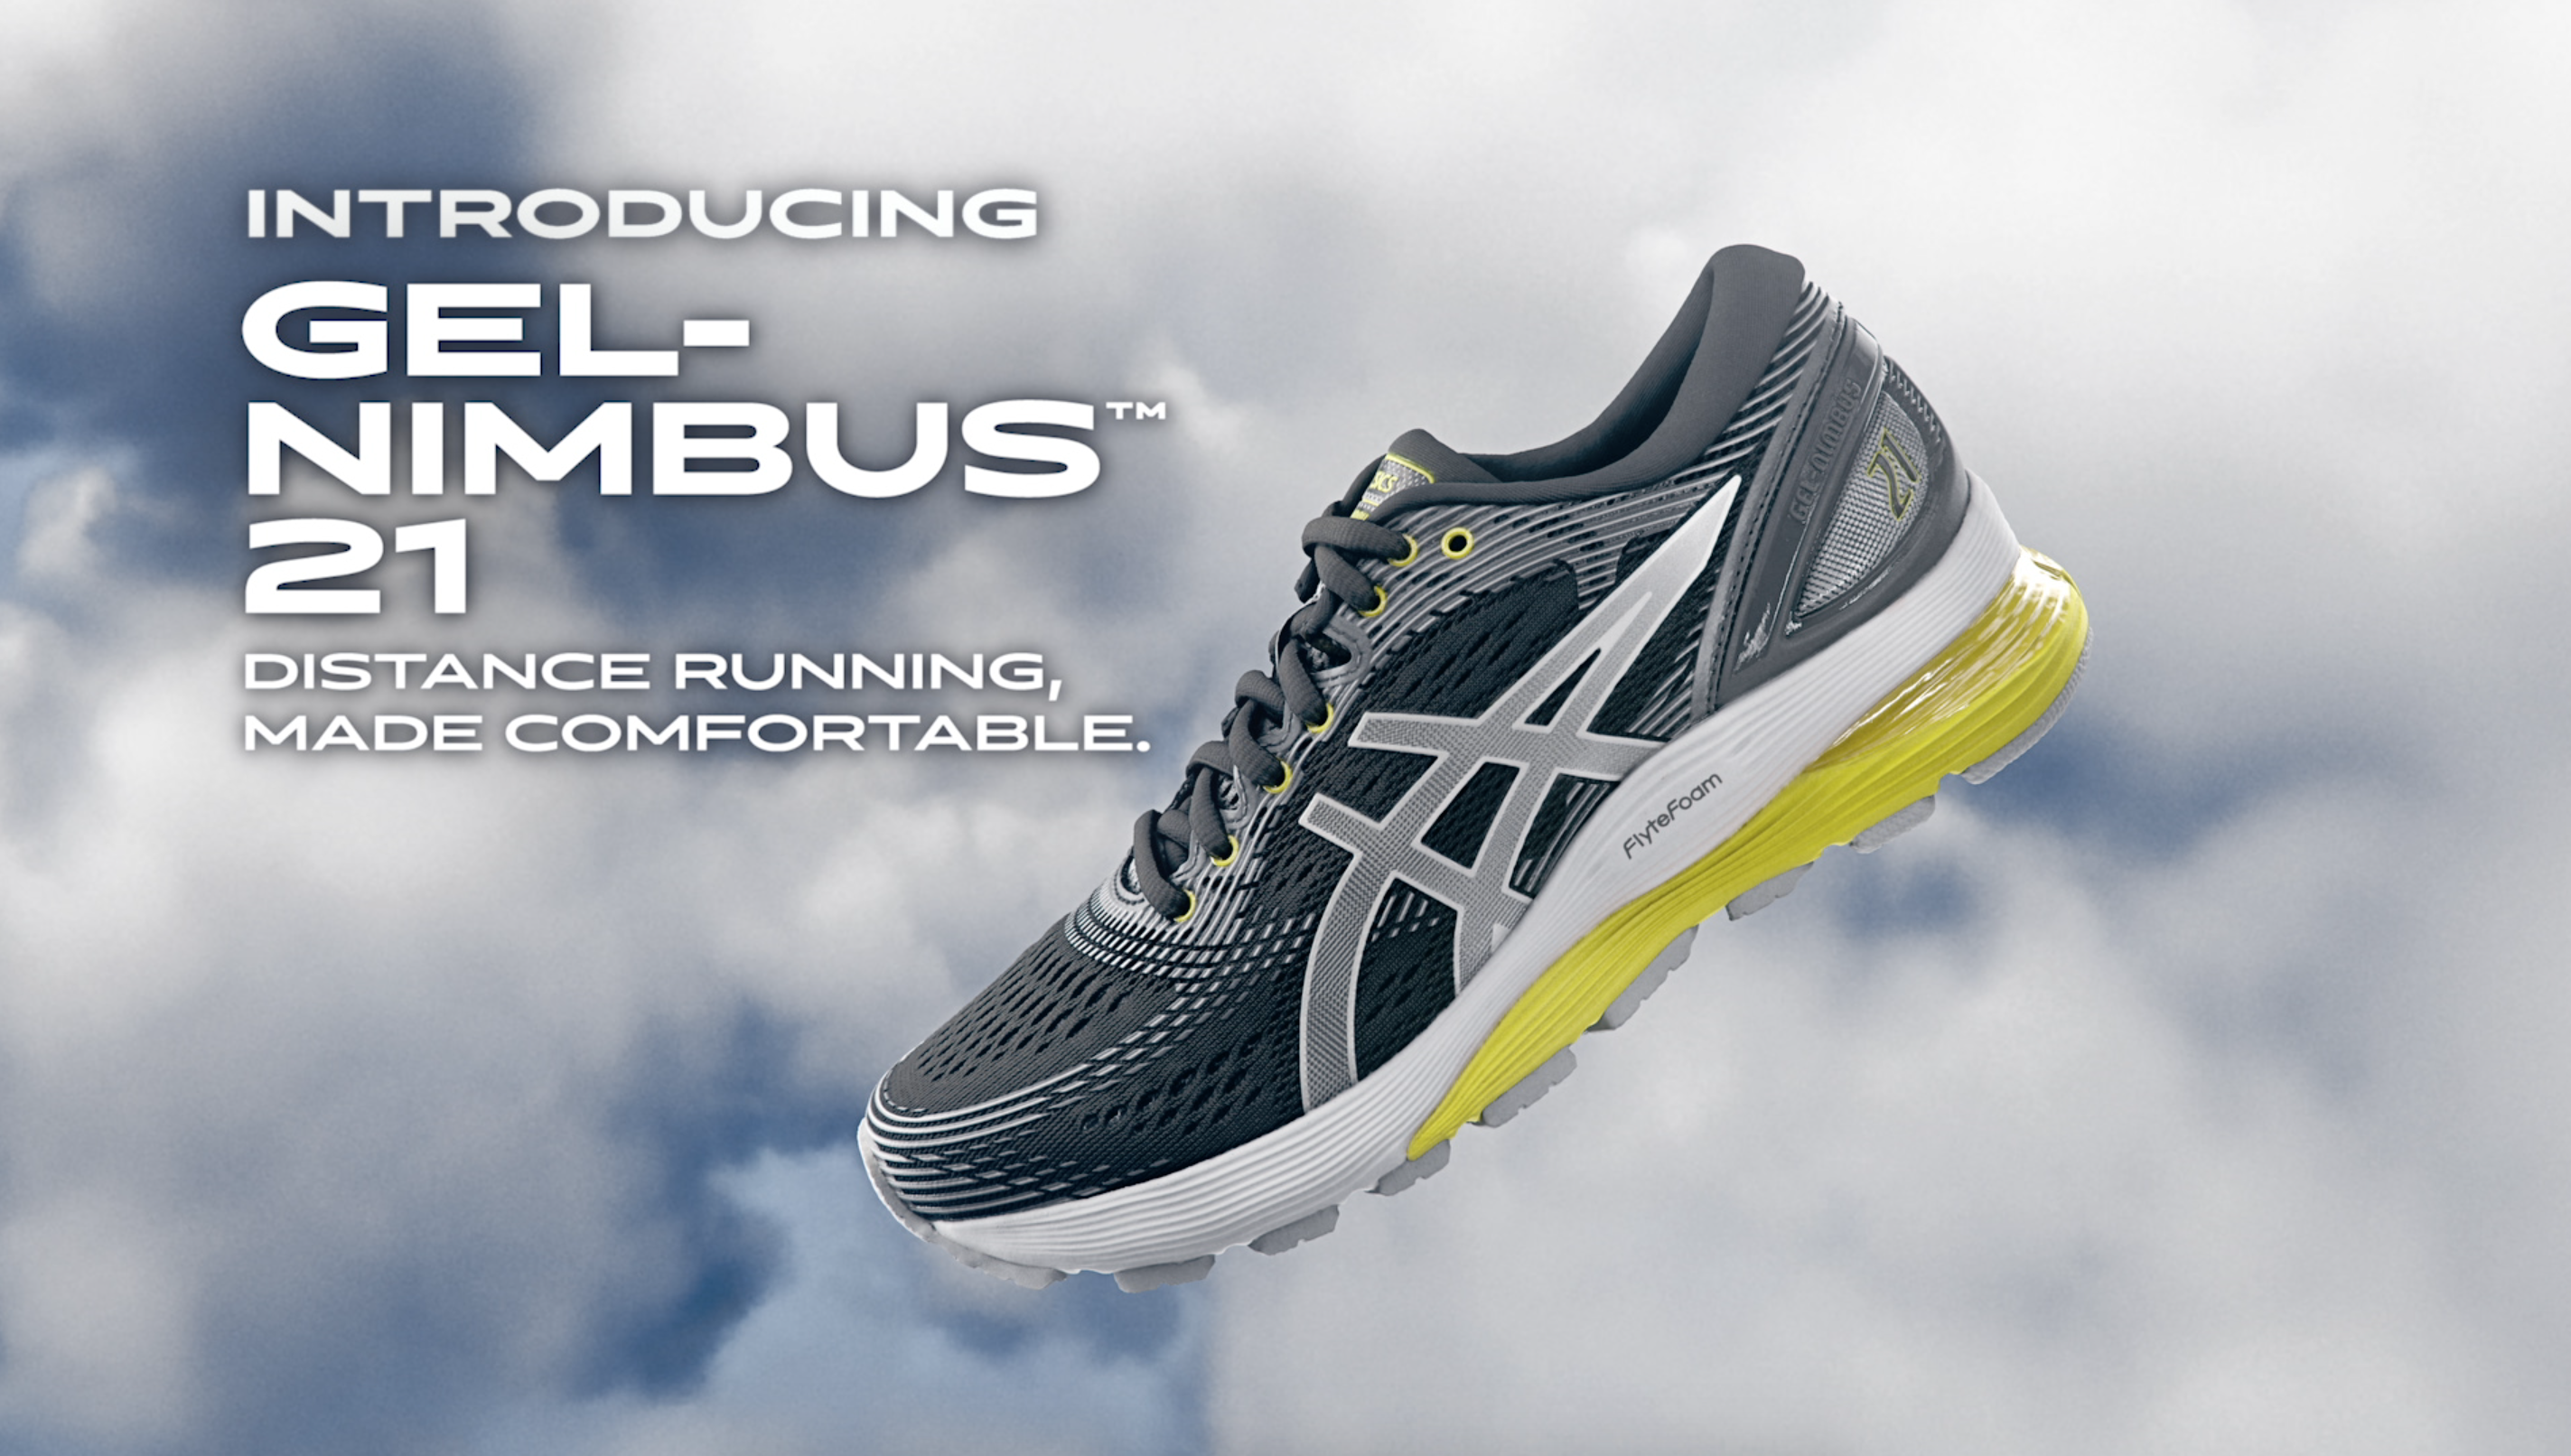 Gel Nimbus 21, Distance Running Made Comfortable. Grey and yellow tennis shoe on top of clouds.